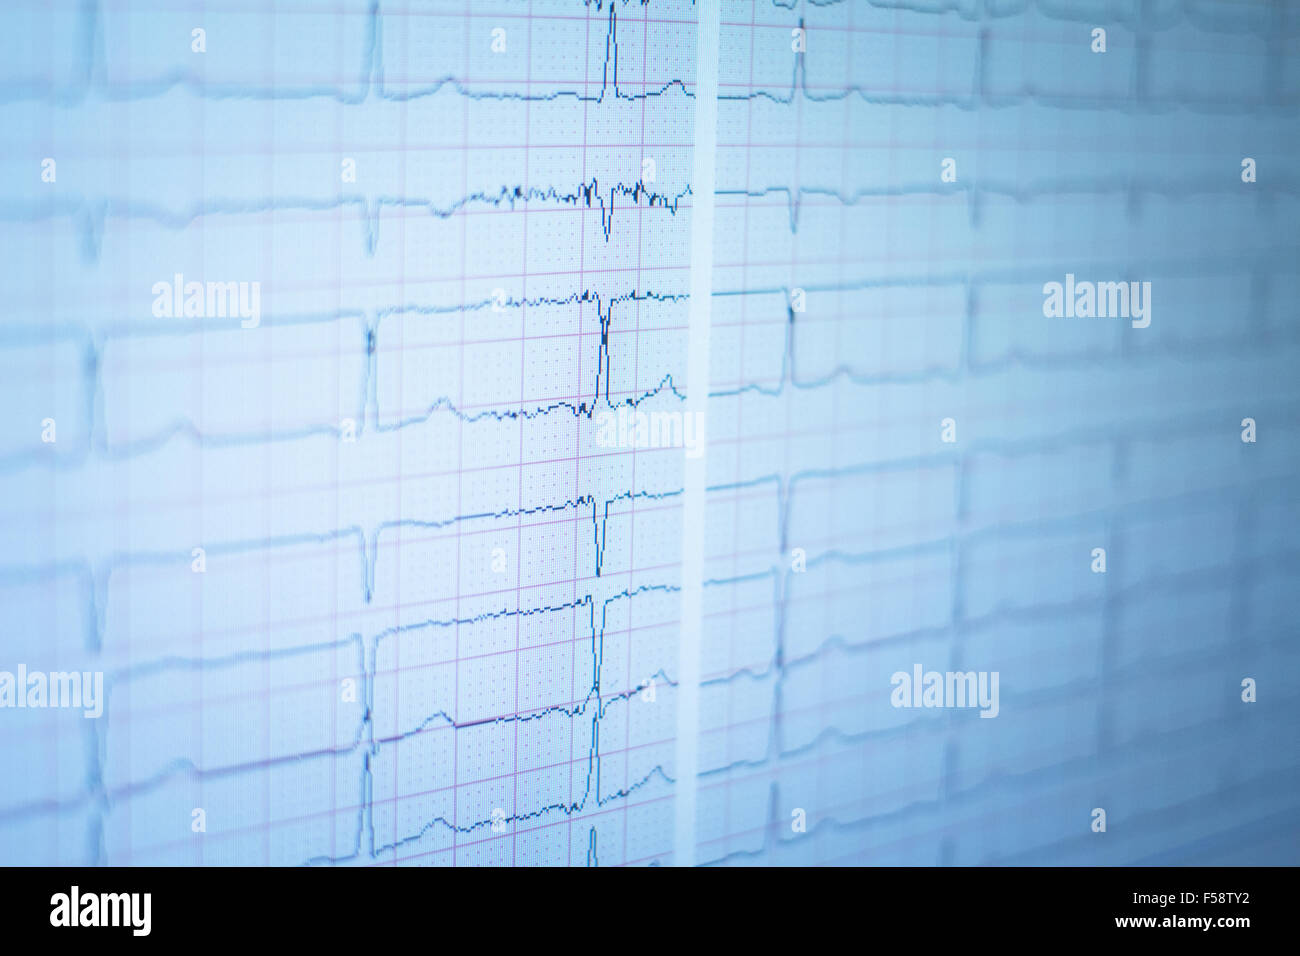 Sports performance professional fitness, power, endurance and strength evaluation test with gas analysis and echocardiogram - Stock Image